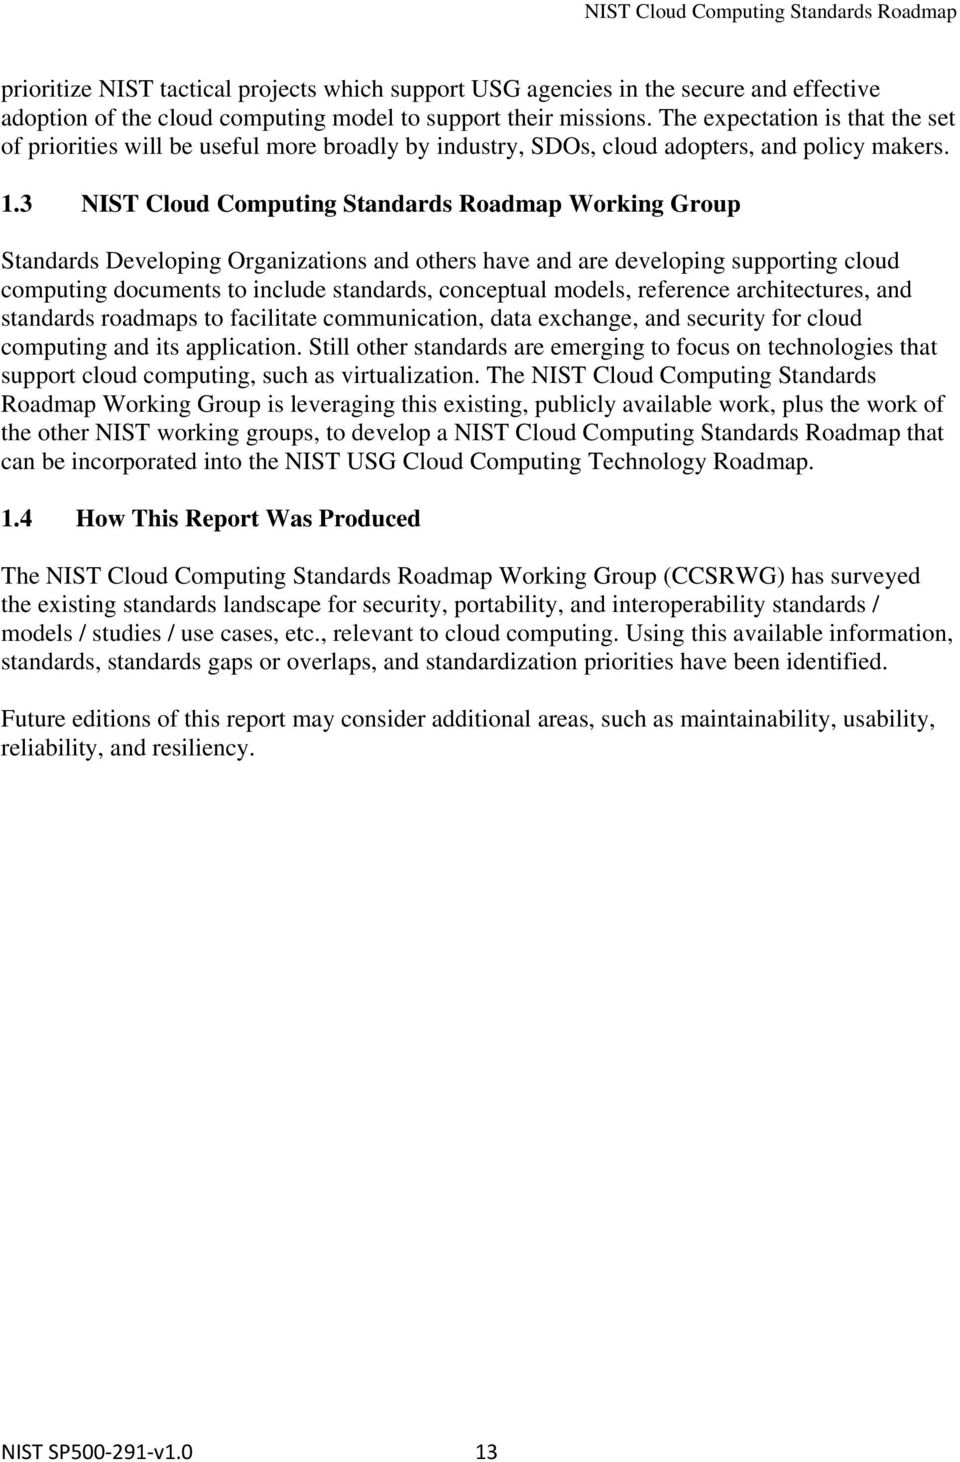 3 NIST Cloud Computing Standards Roadmap Working Group Standards Developing Organizations and others have and are developing supporting cloud computing documents to include standards, conceptual